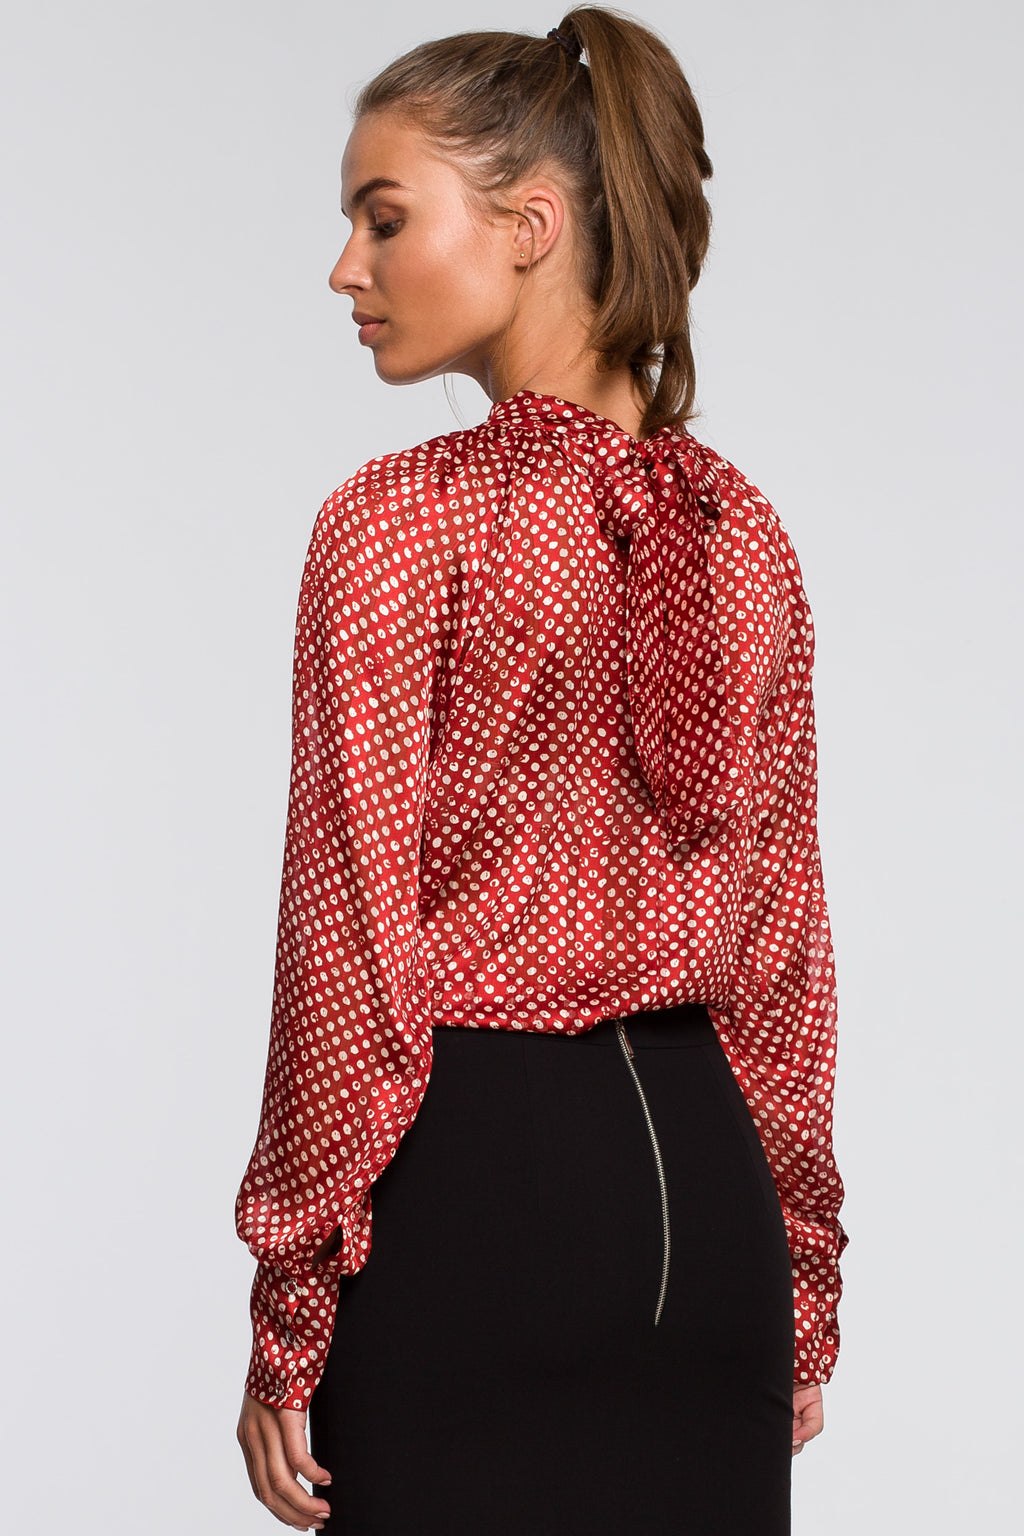 Chiffon Red Polka Print Blouse With Tied Back - So Chic Boutique